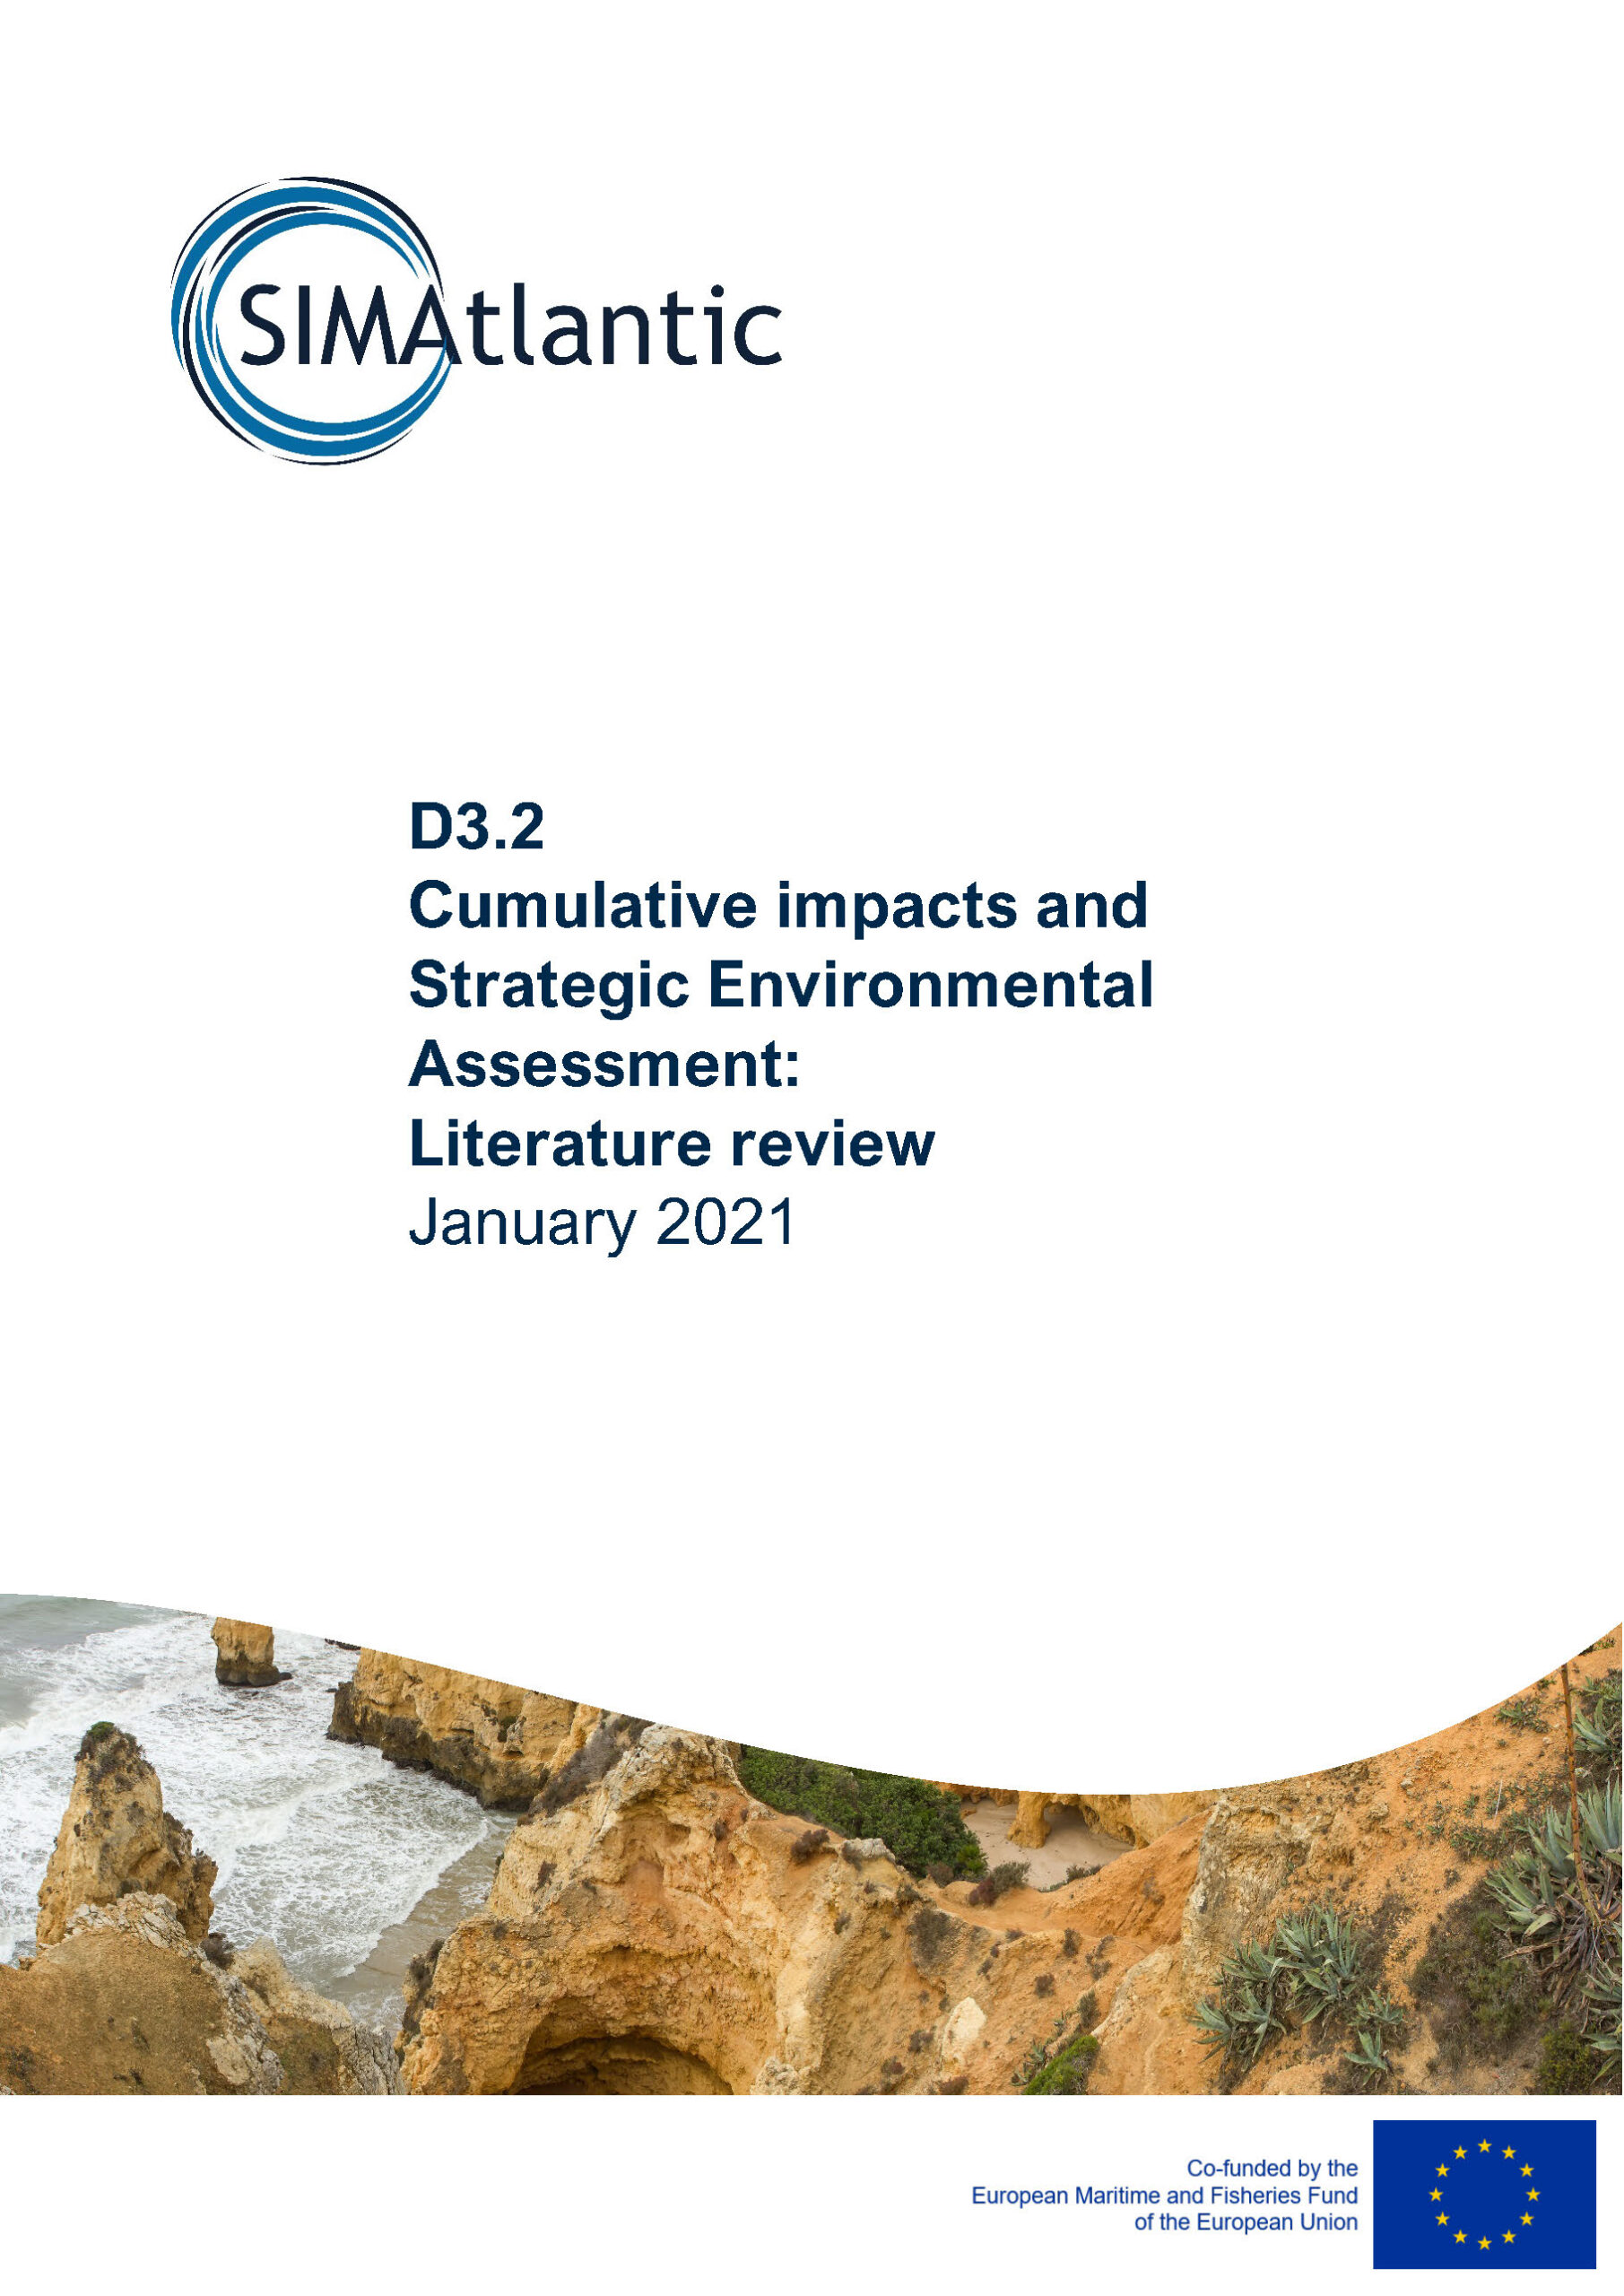 D3.2 Literature review on cumulative impacts and Strategic Environmental Assessment